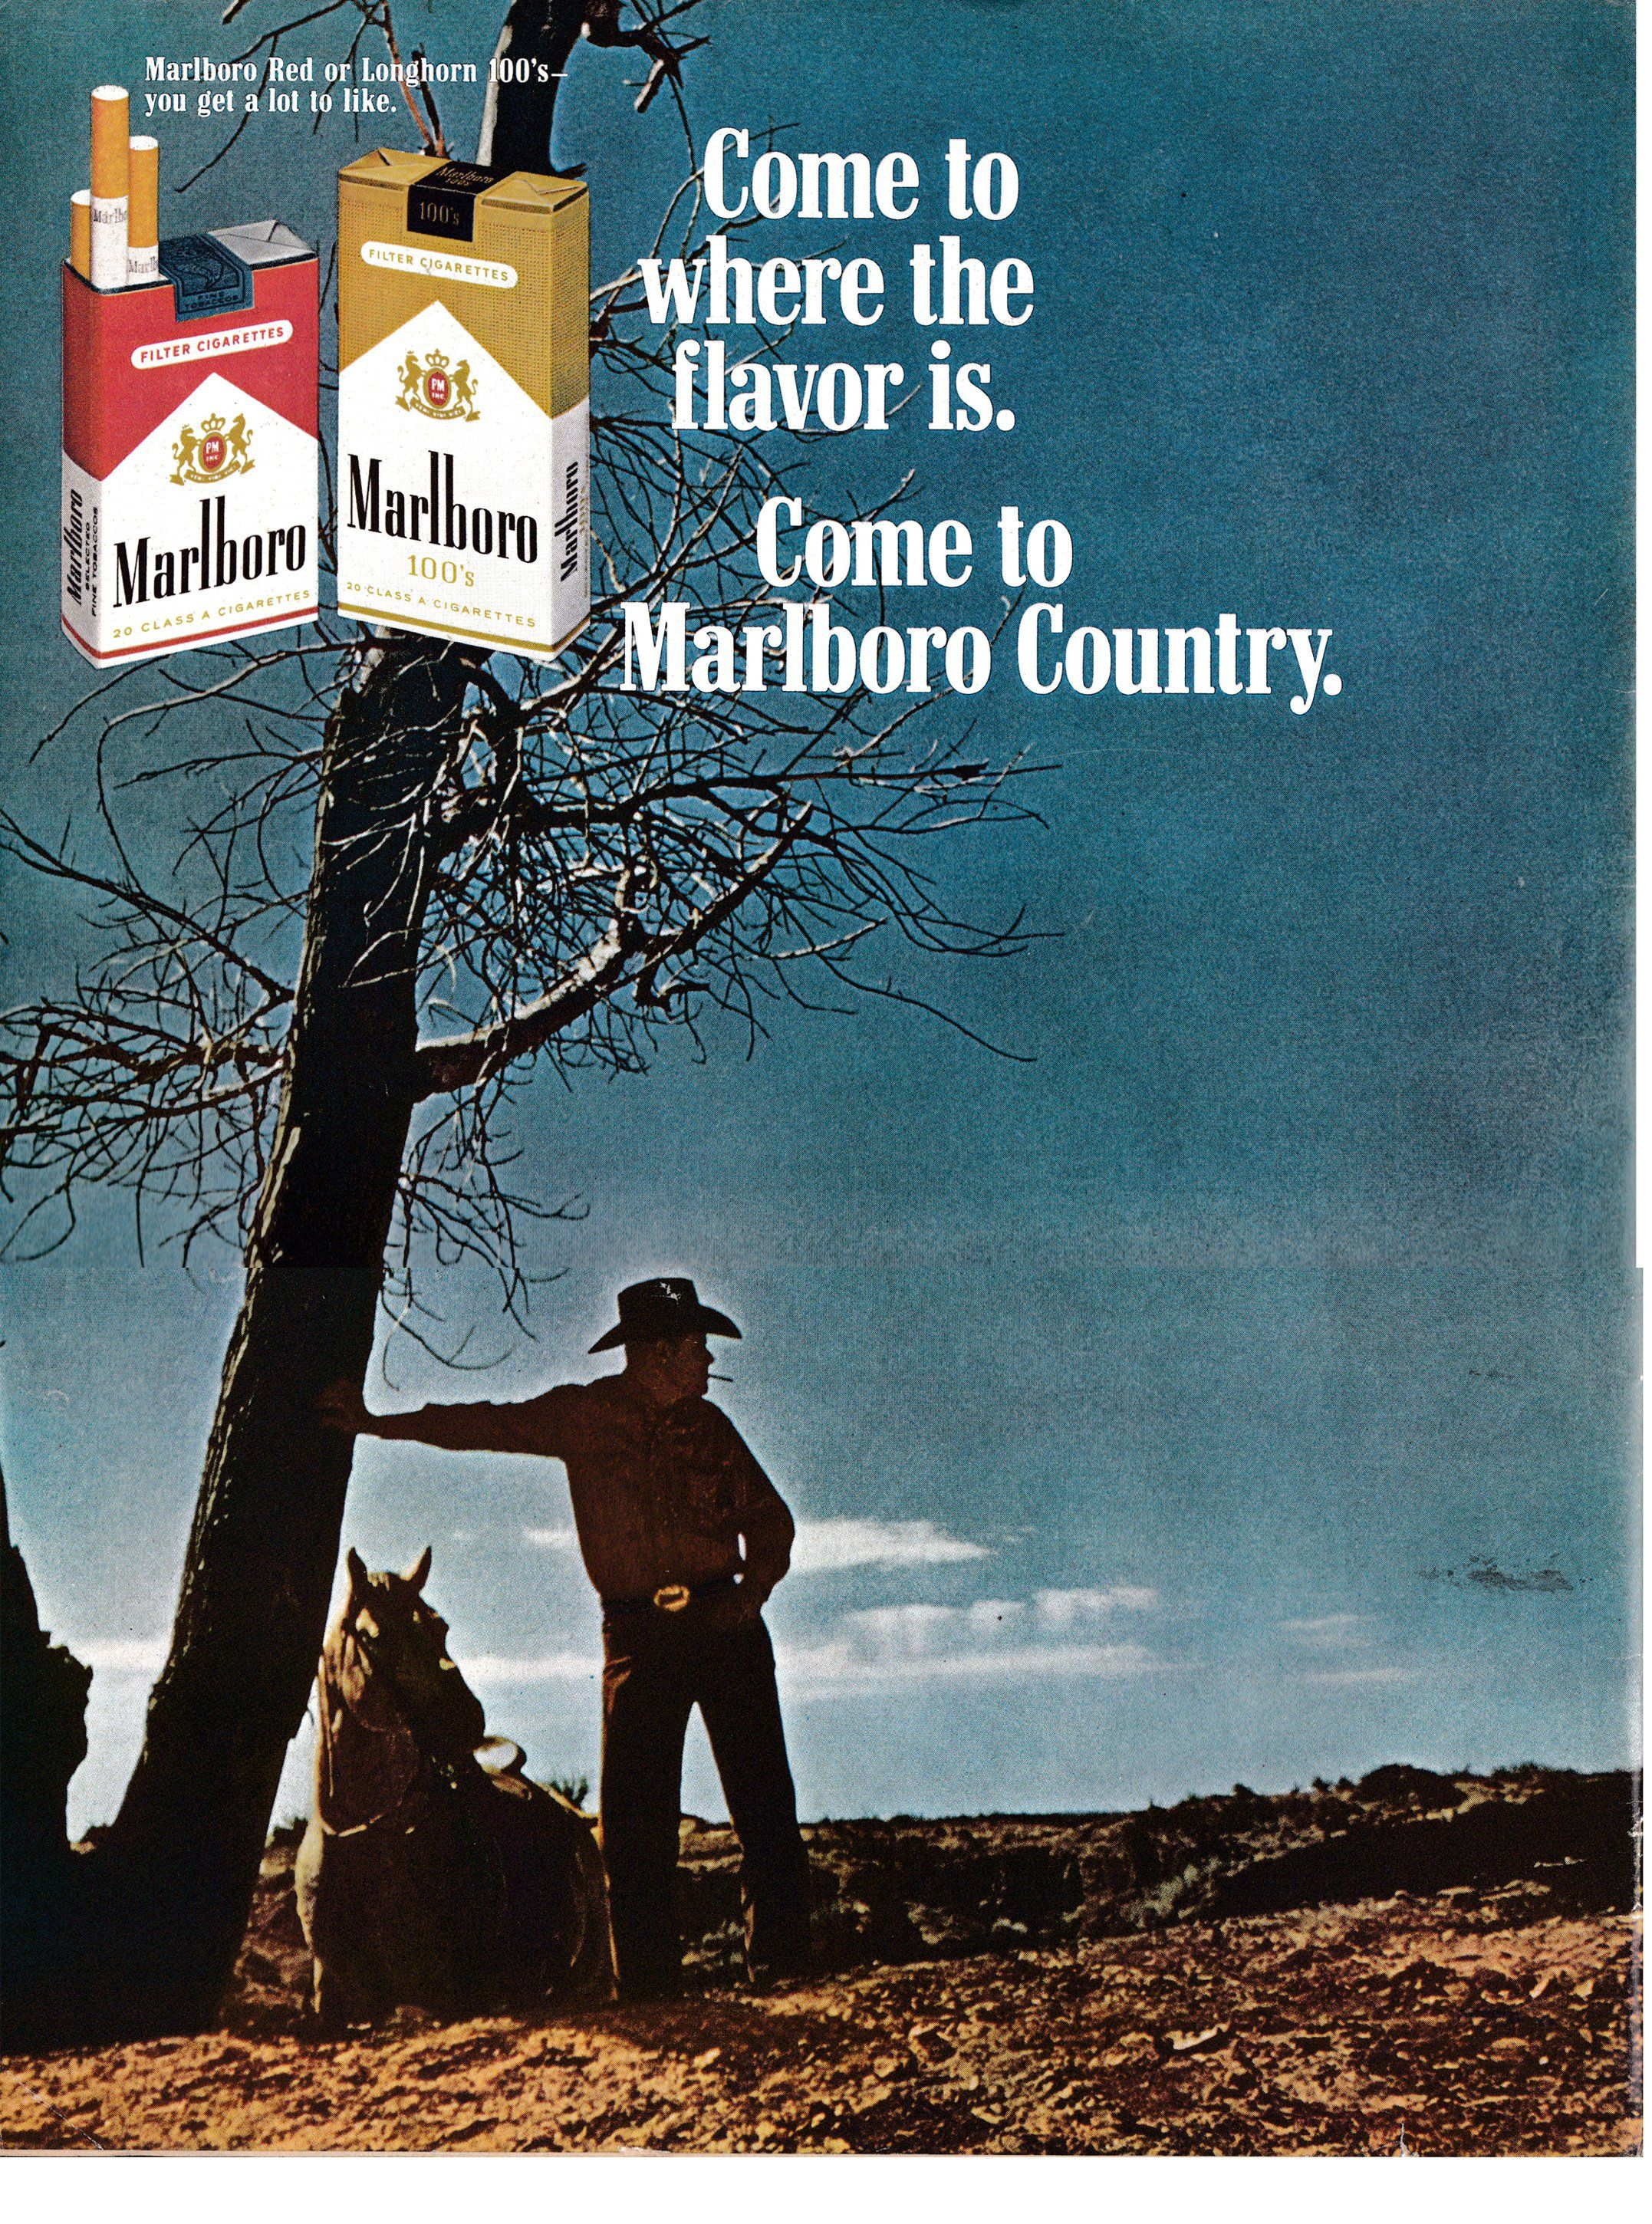 1968 Marlboro Country Man Cigarettes Leaning On Tree Original